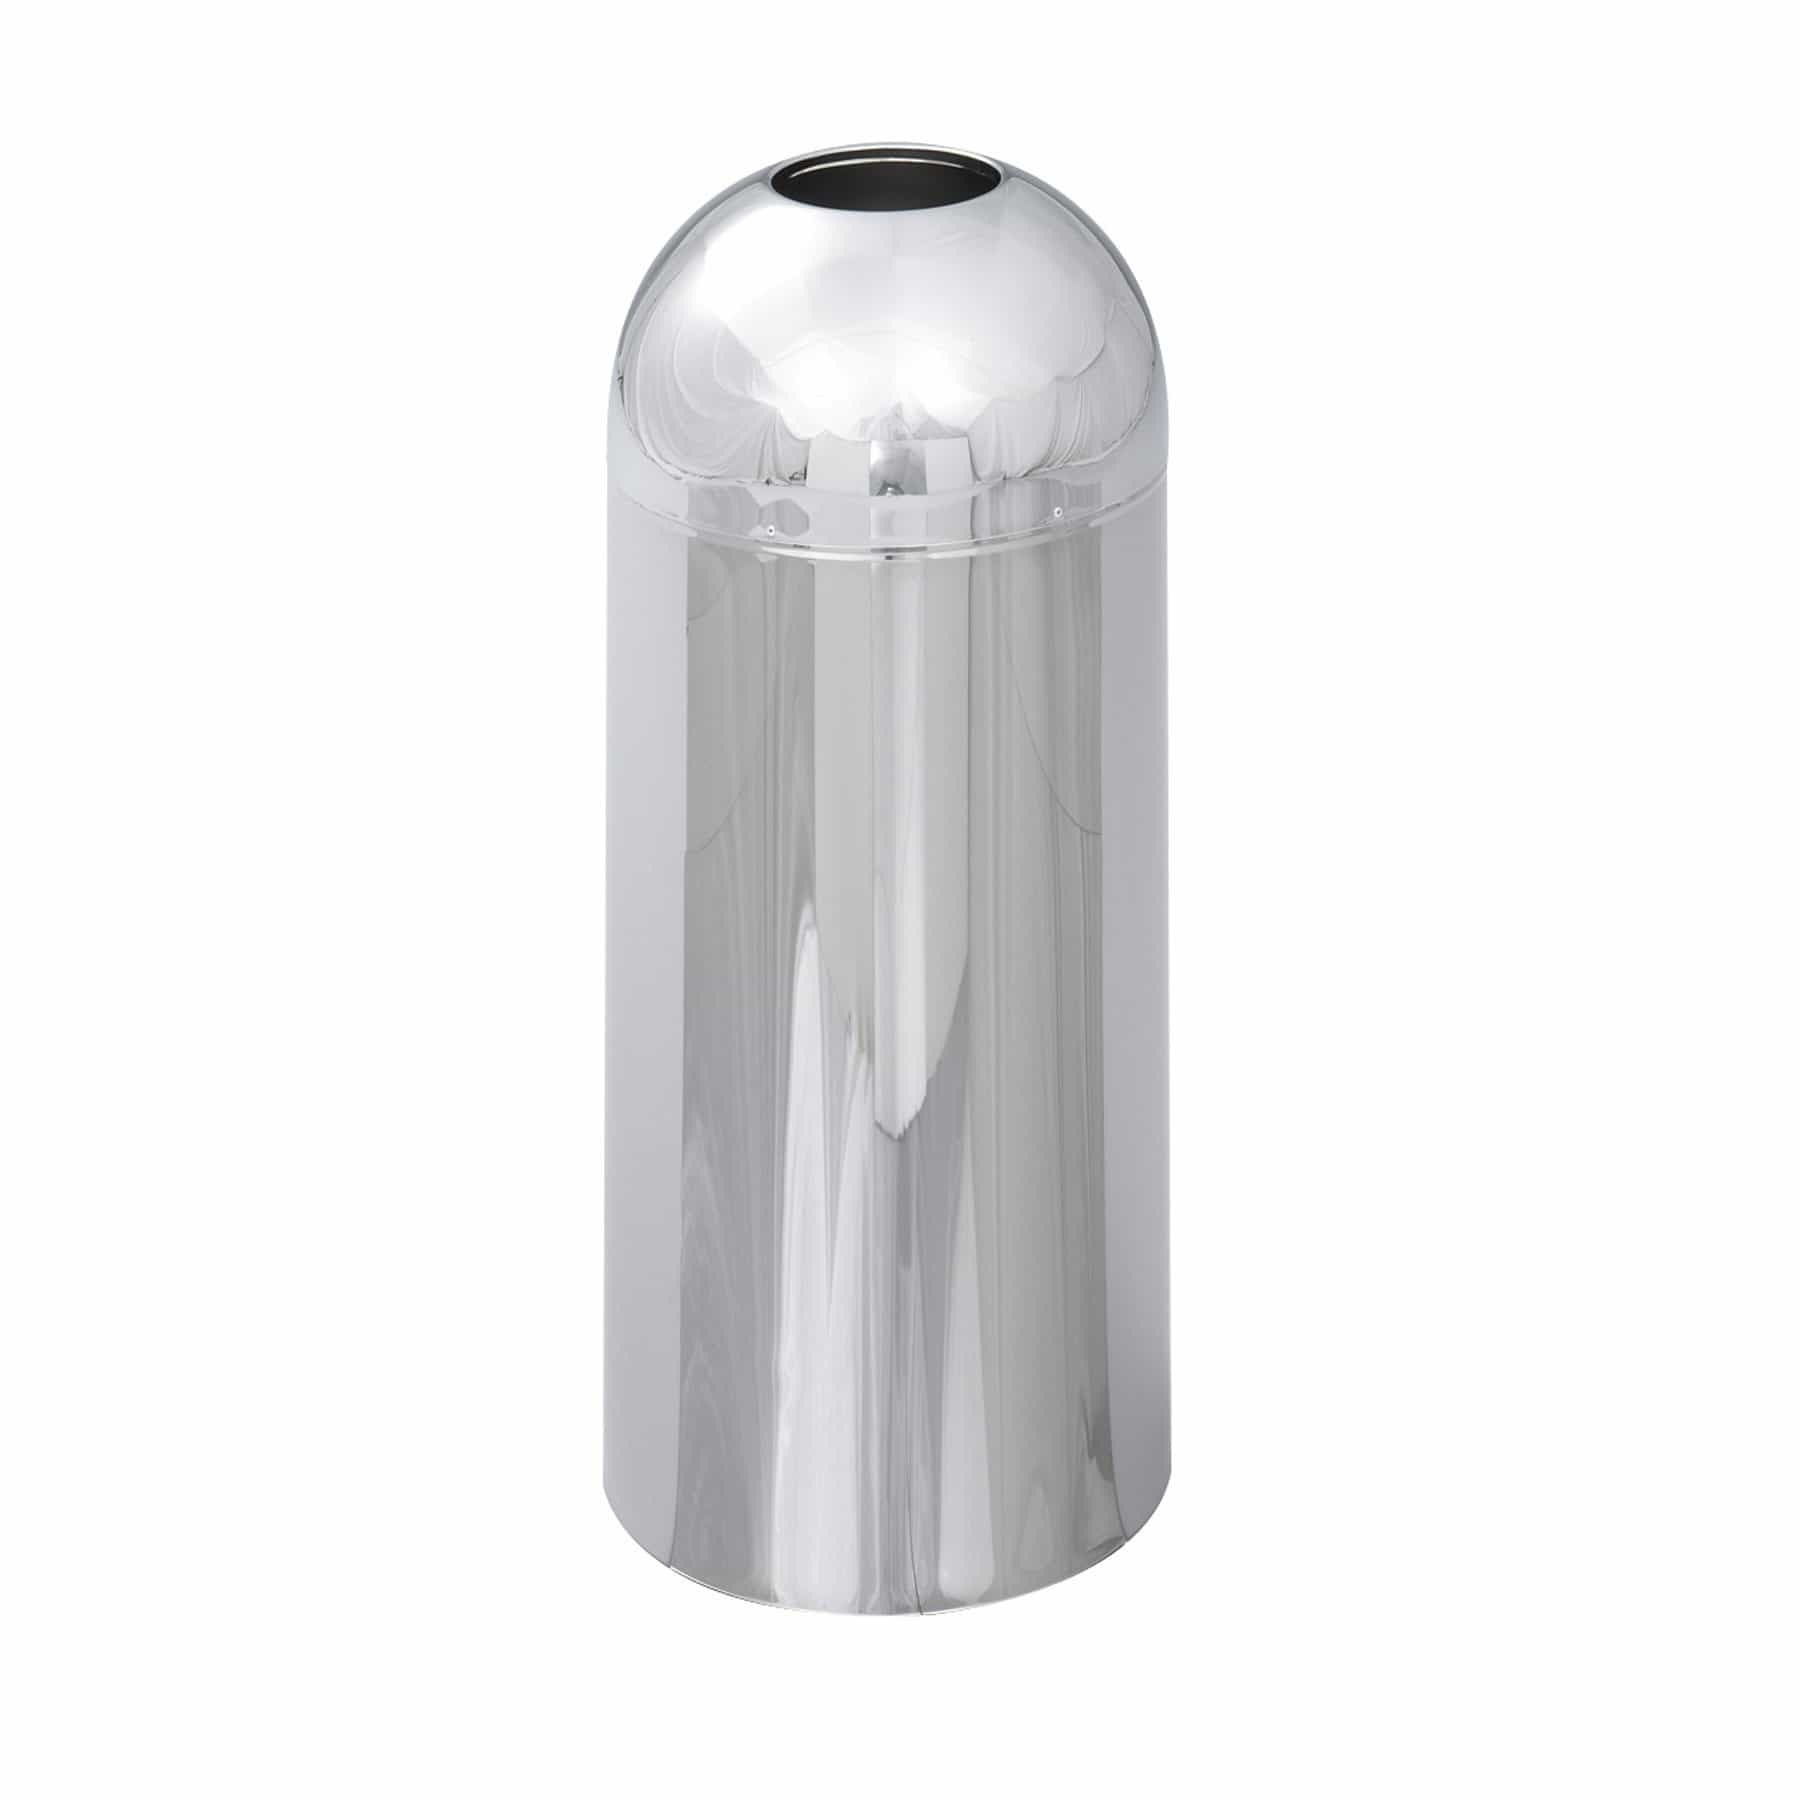 bedinhome - Reflections By Safco Open Top Dome Receptacle Steel Trash Can With Chrome - Safco - Trash Can